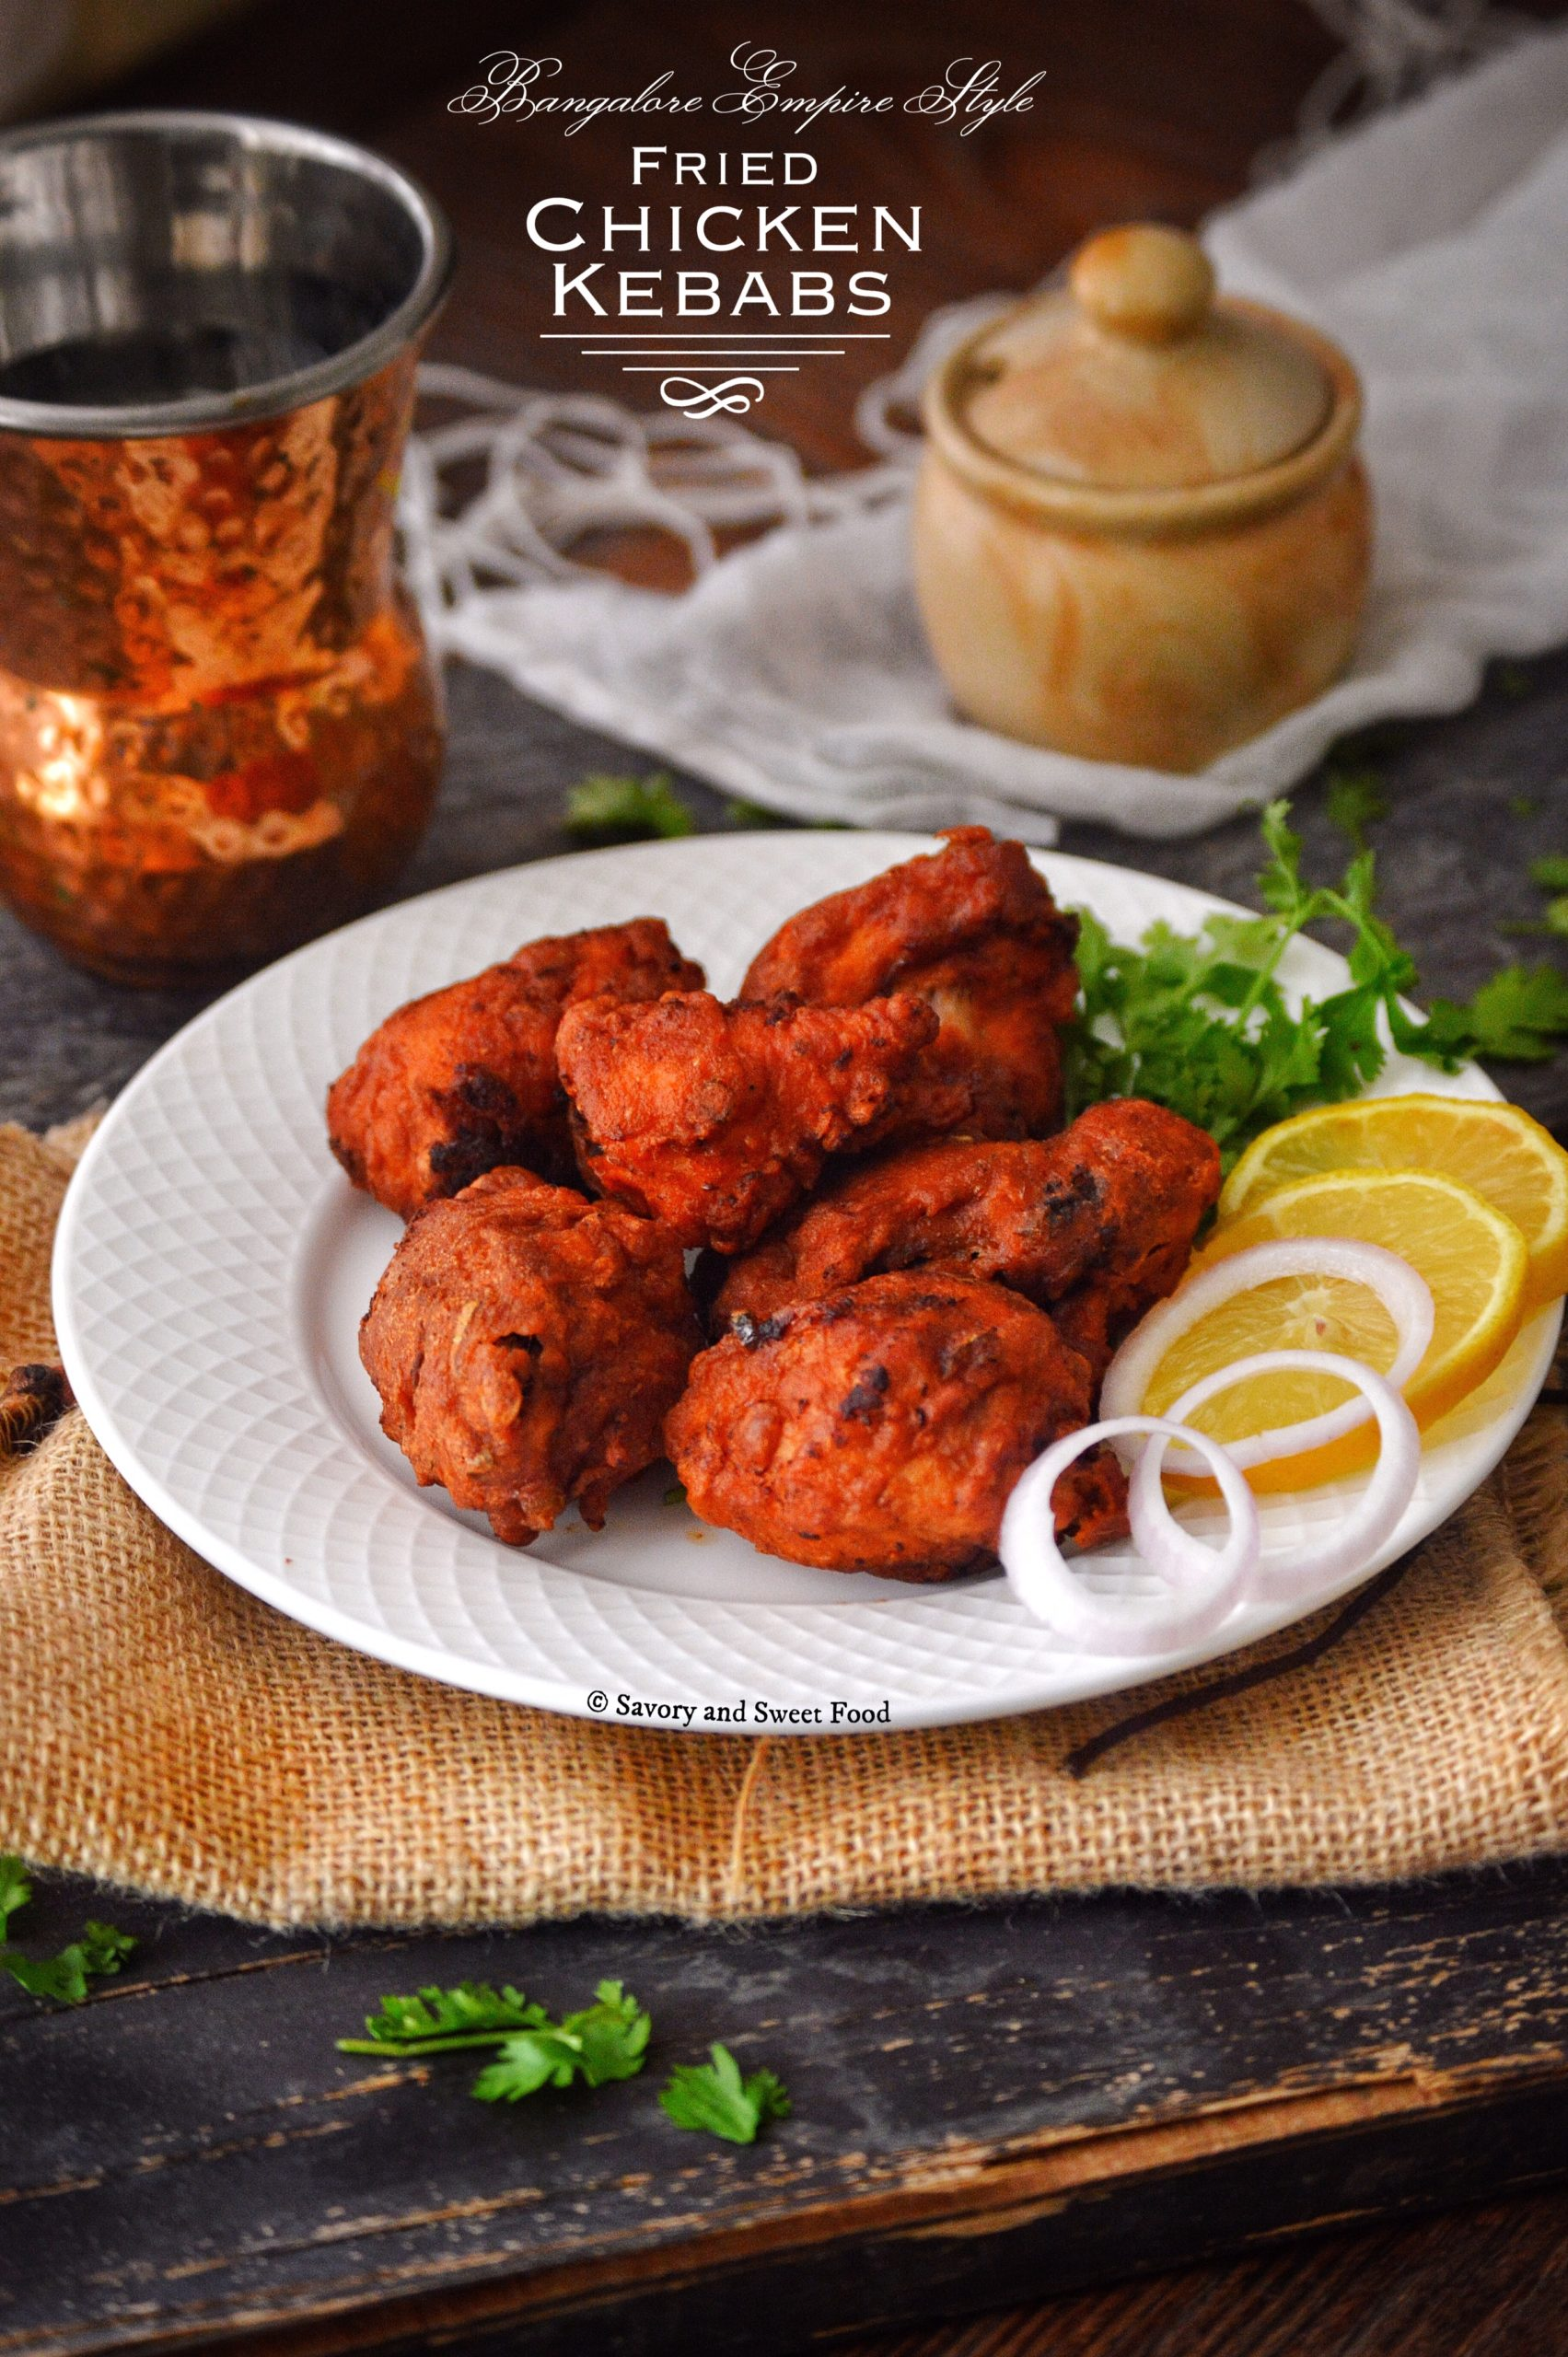 Fried Chicken Kababs ( Bangalore Empire Restaurant Style)